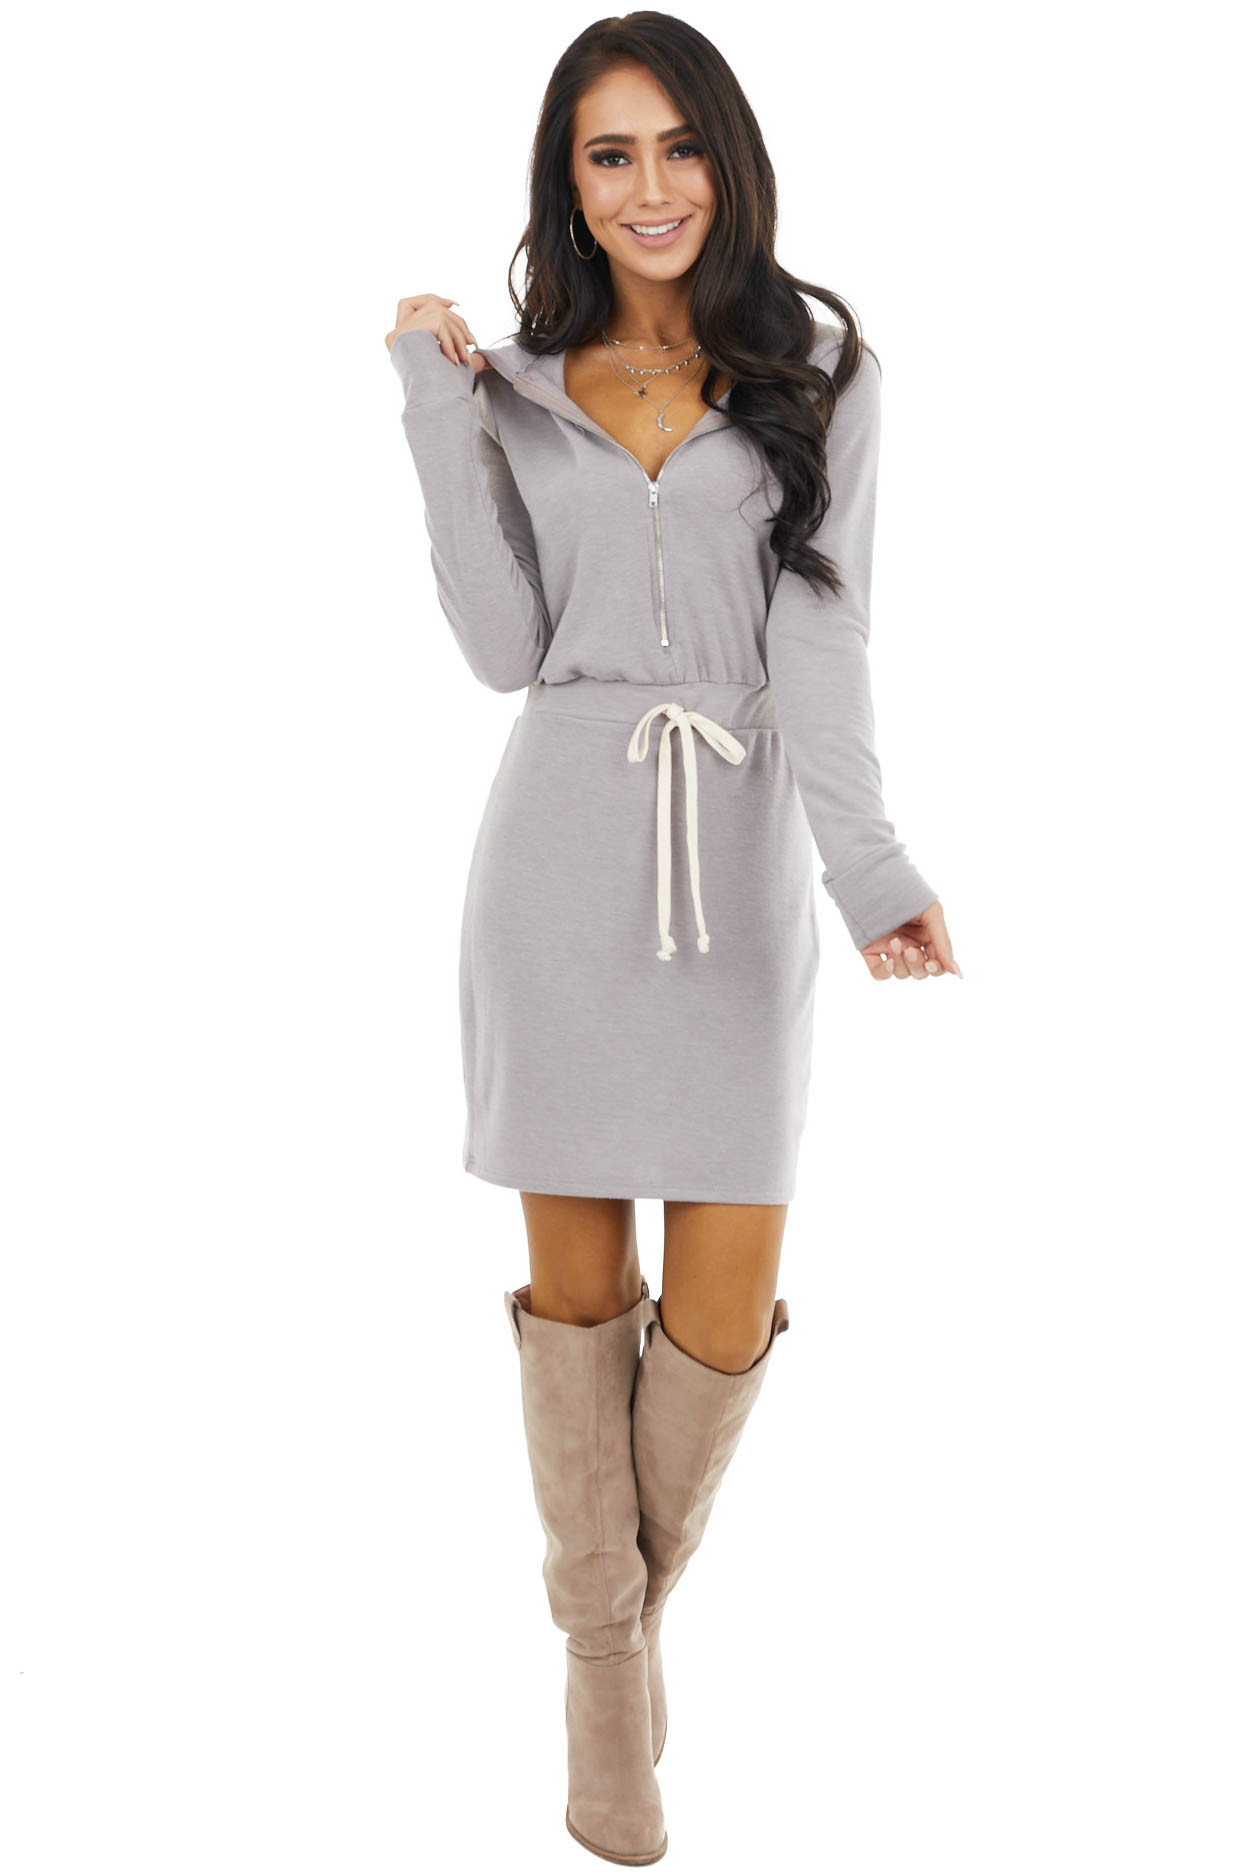 Dusty Mauve Sweater Dress with Zipper and Hood Details